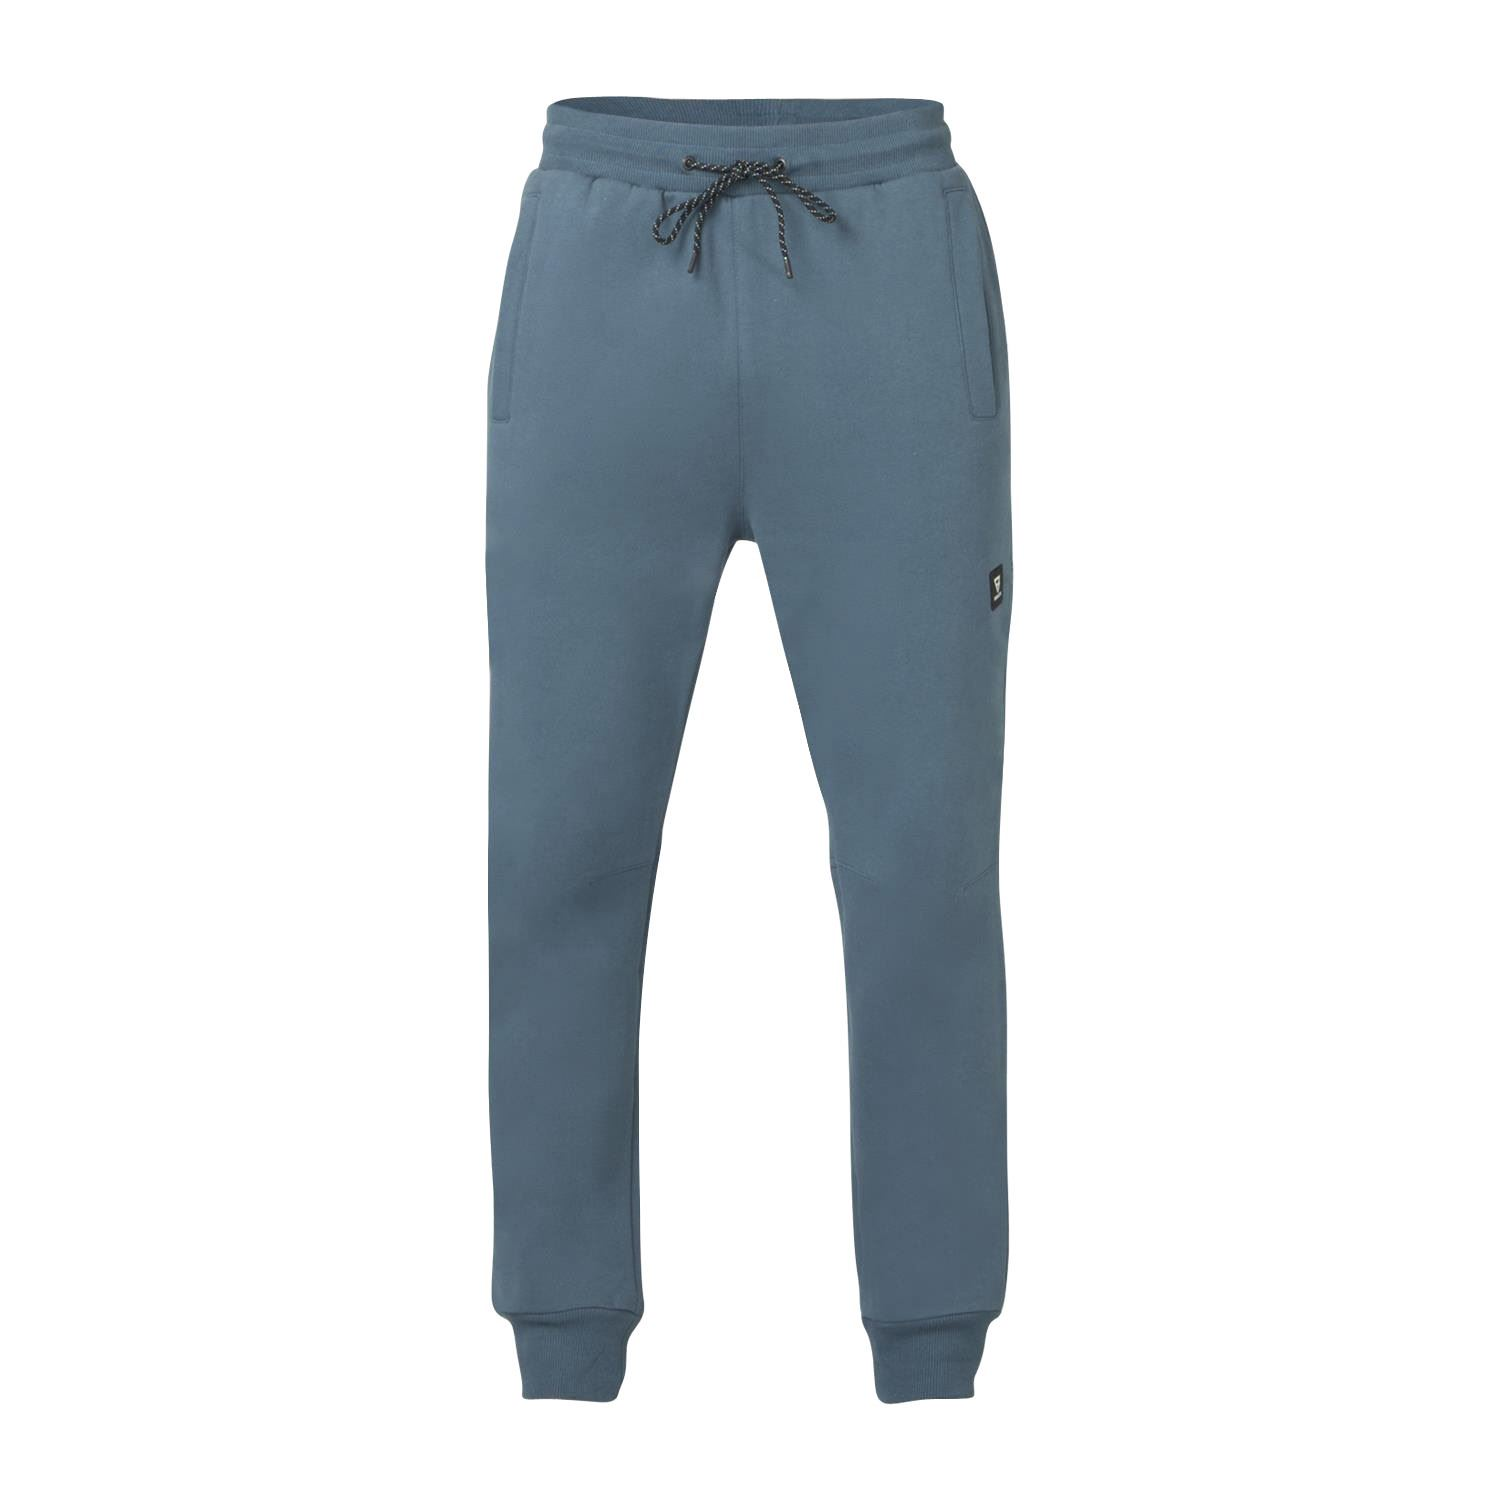 Brunotti Hendrik-N  (blue) - men pants - Brunotti online shop